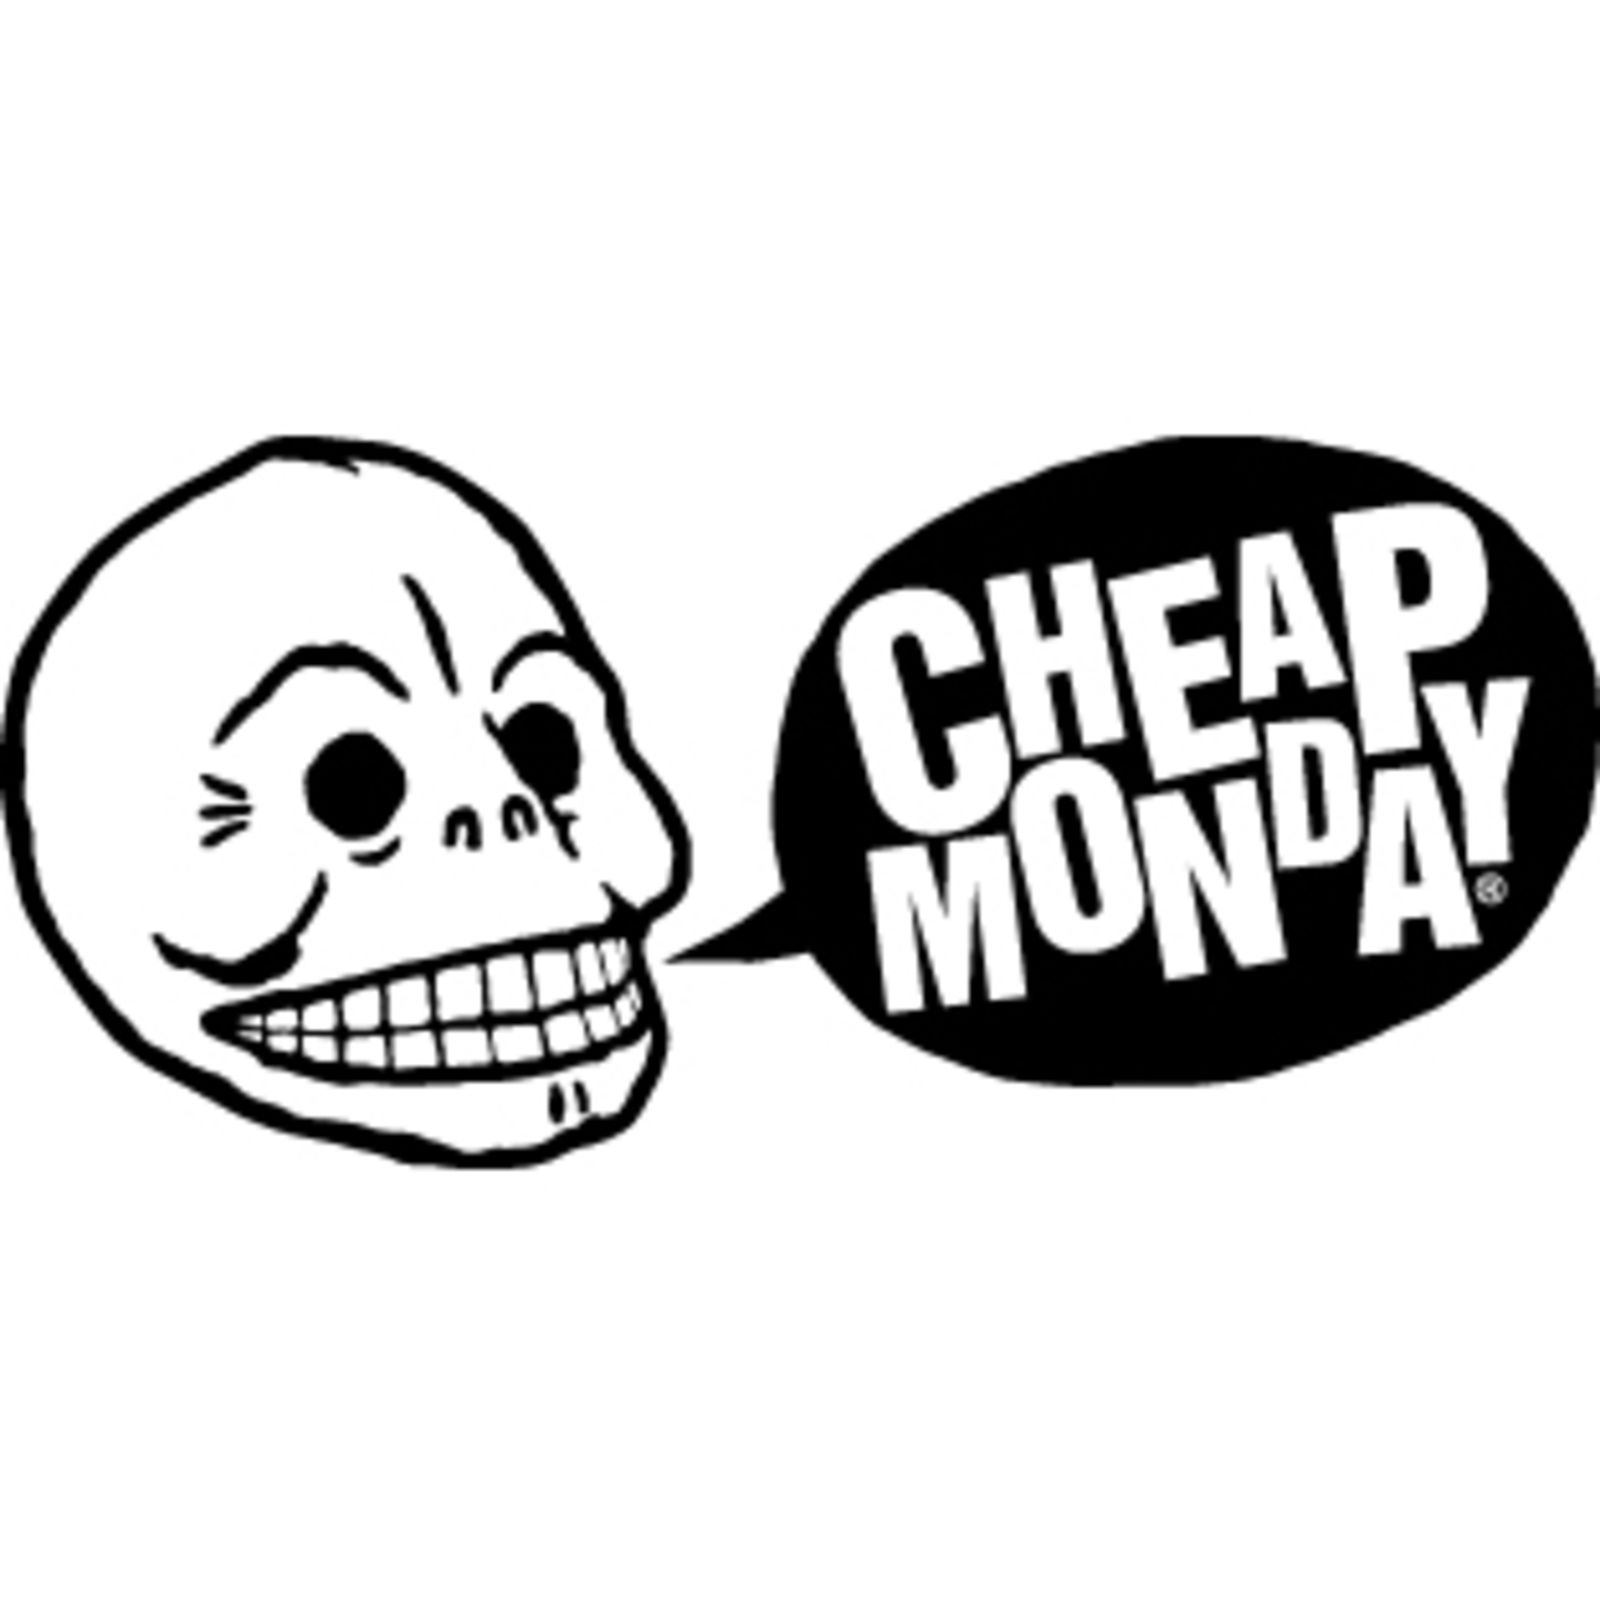 CHEAP MONDAY (Image 1)